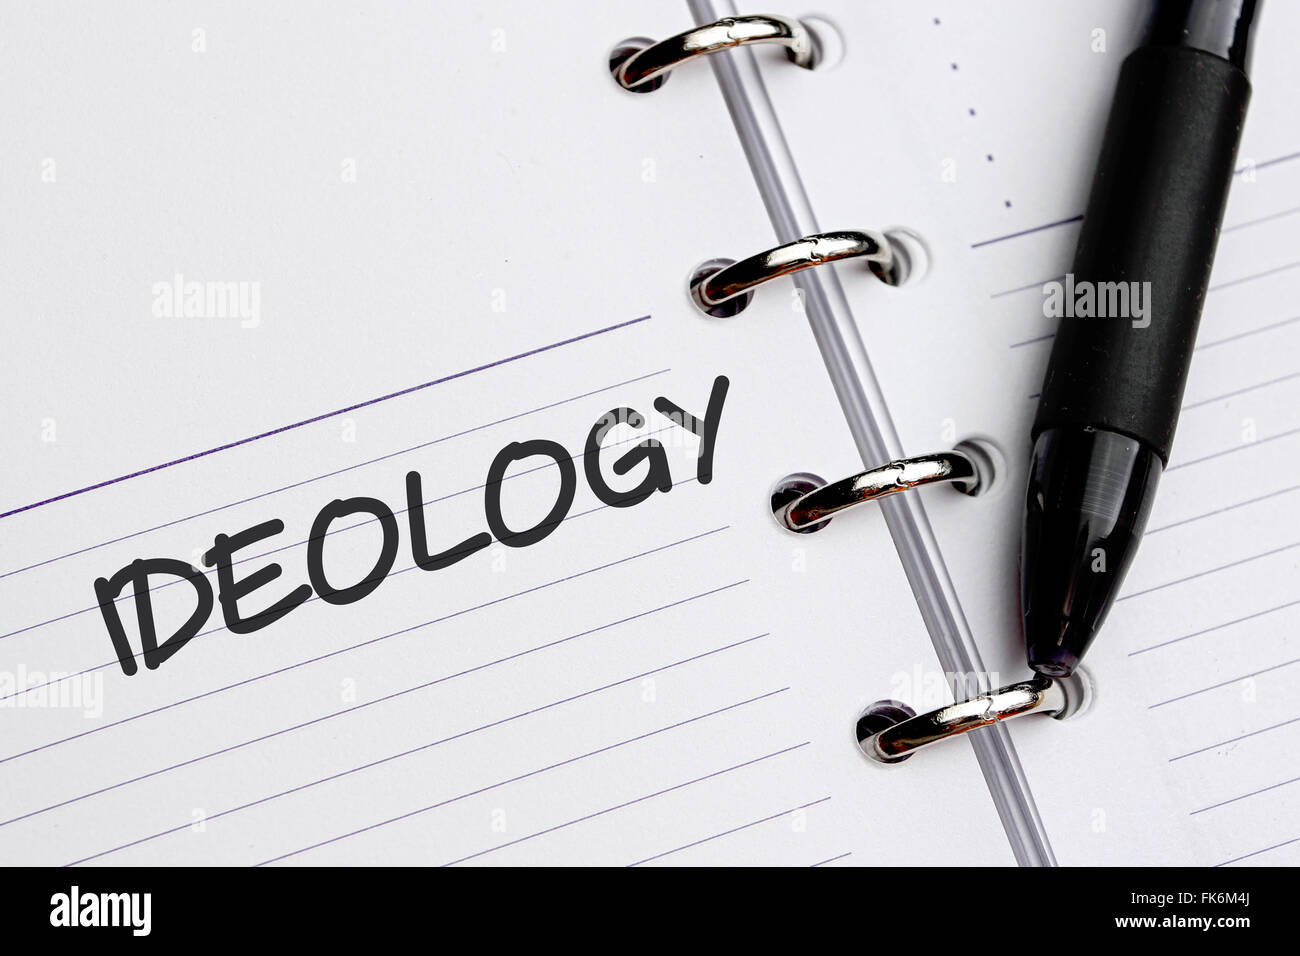 Ideology word written on paper. - Stock Image